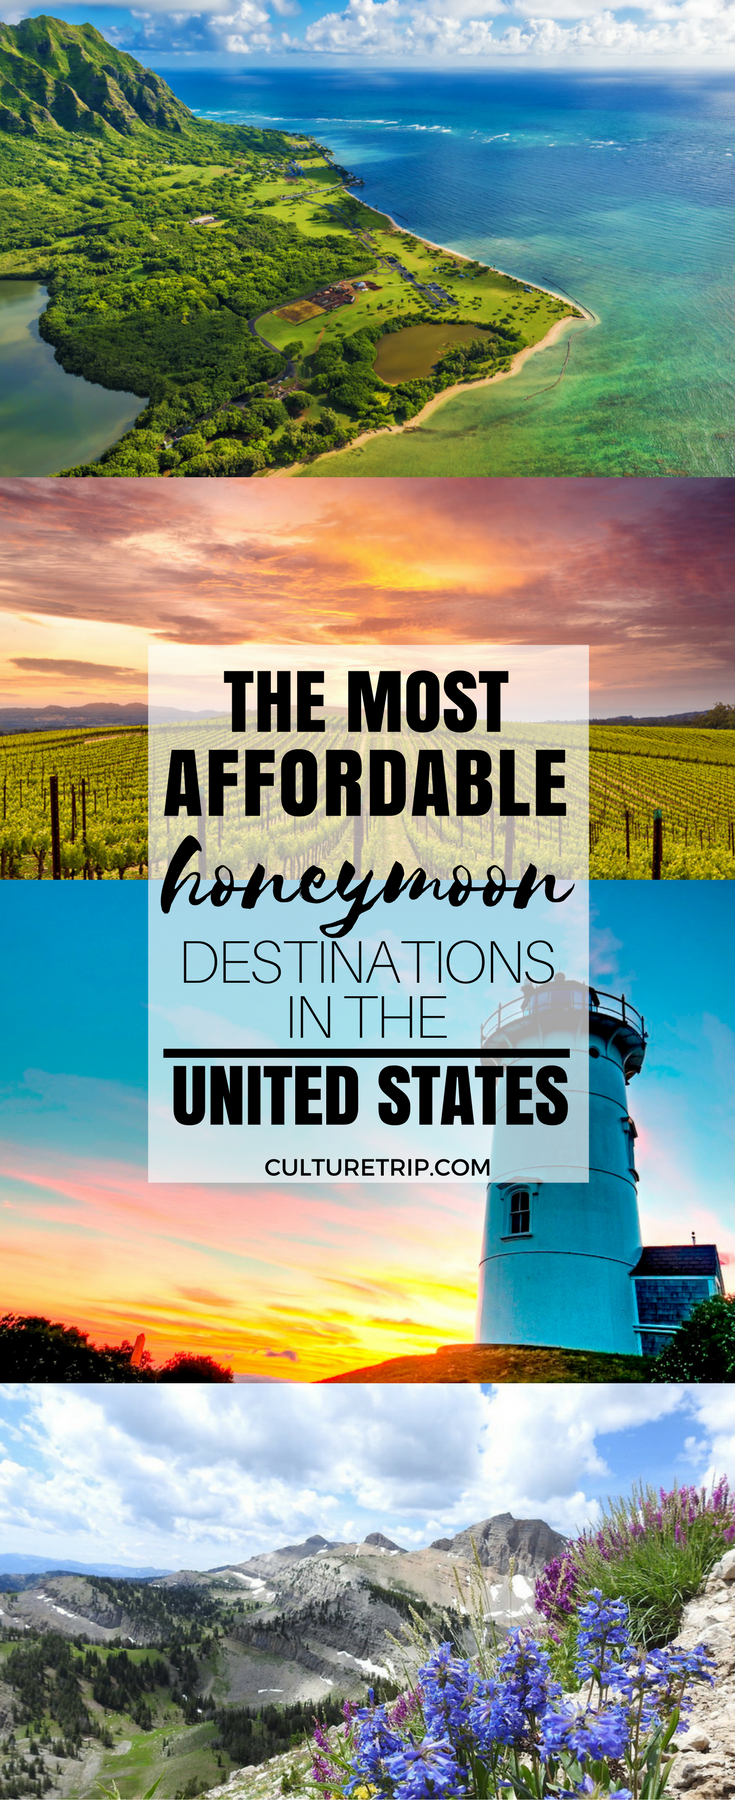 the most affordable honeymoon destinations in the united states in